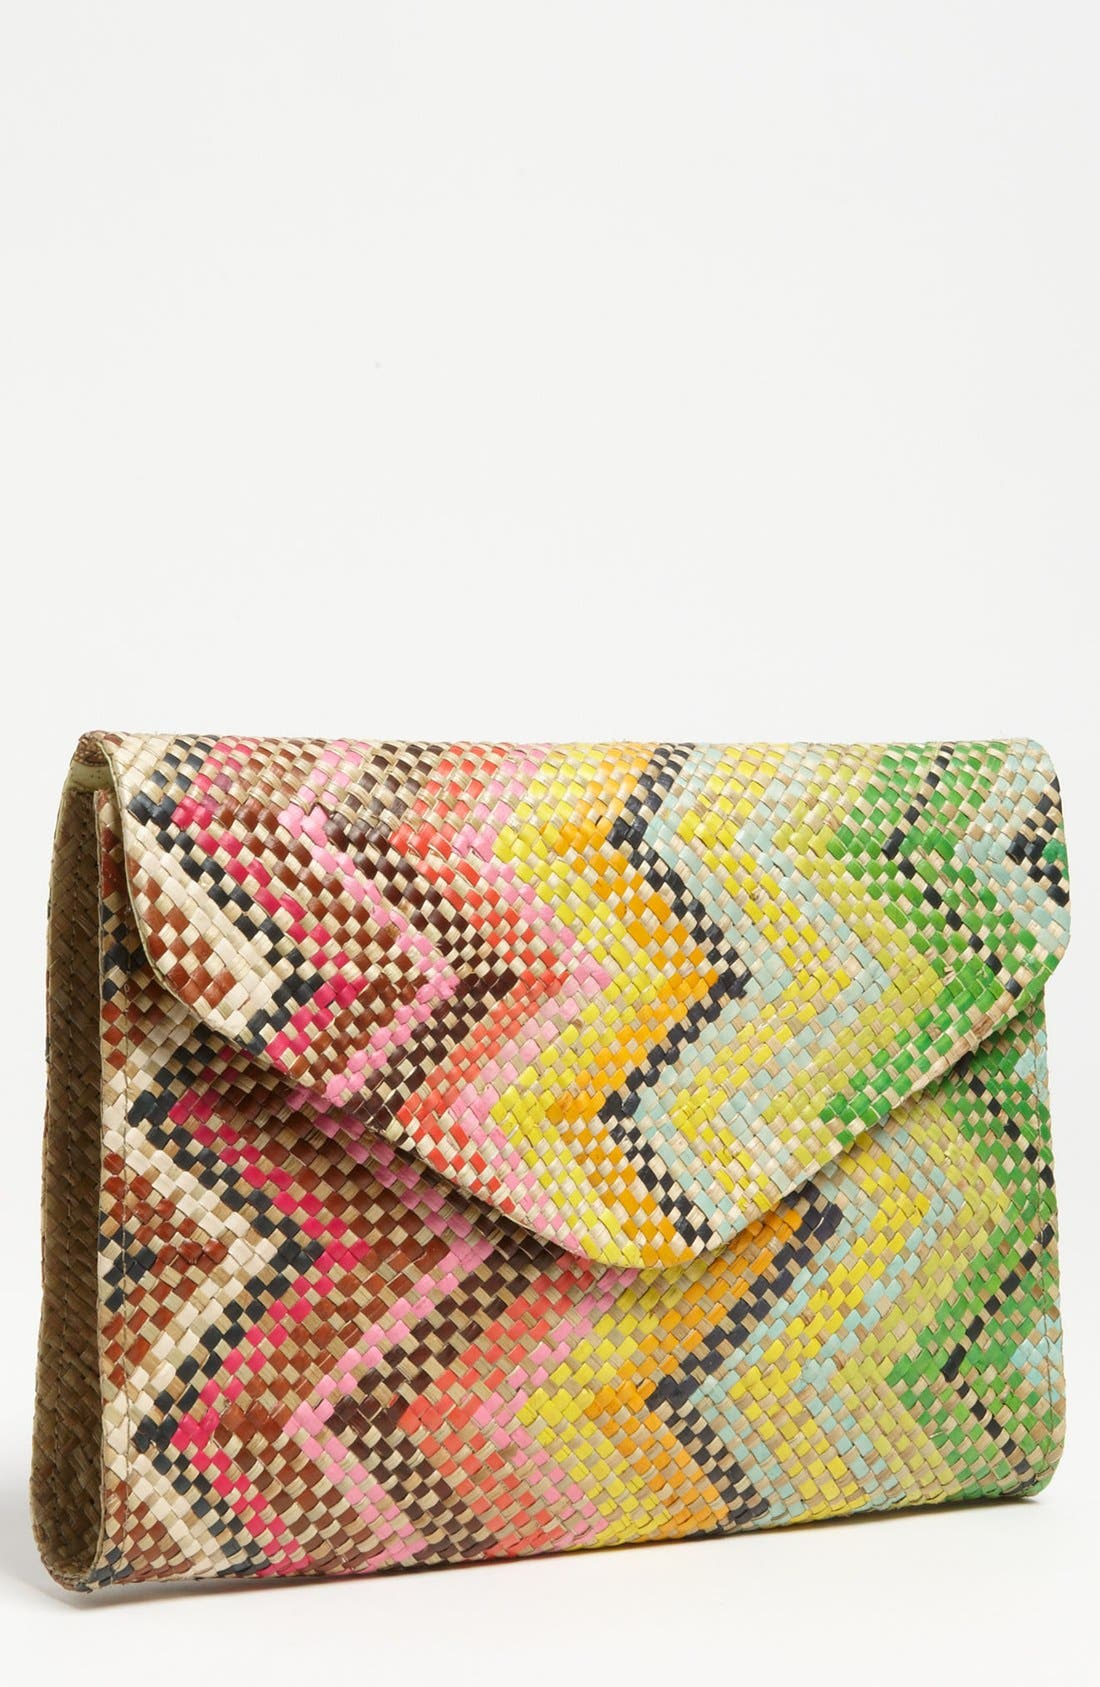 Alternate Image 1 Selected - BANAGO 'Manila - Small' Clutch